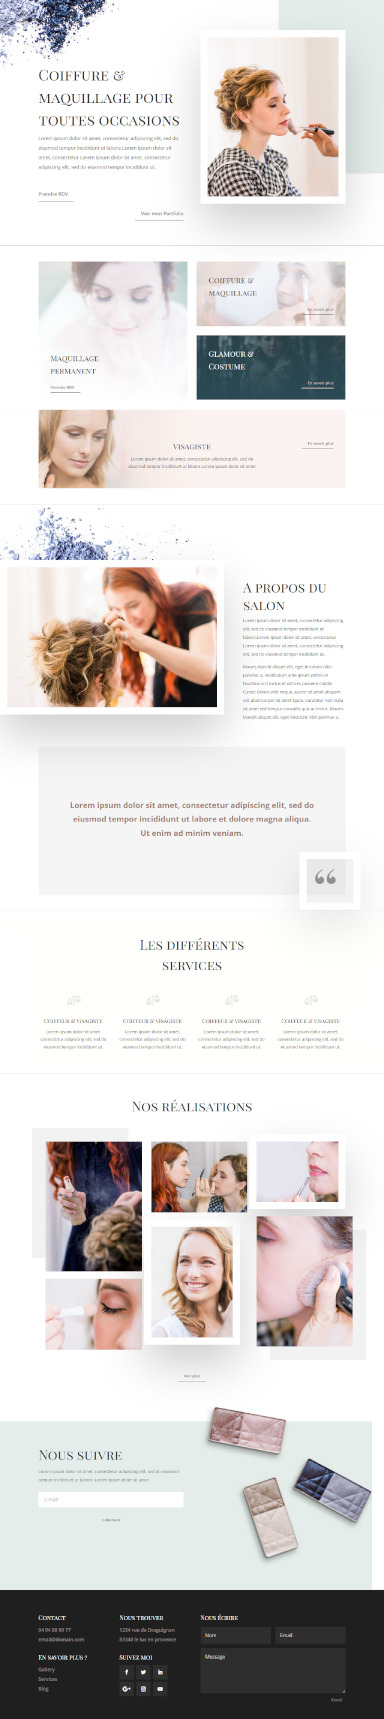 site coiffeur visagiste par totum orbem creation de site internet